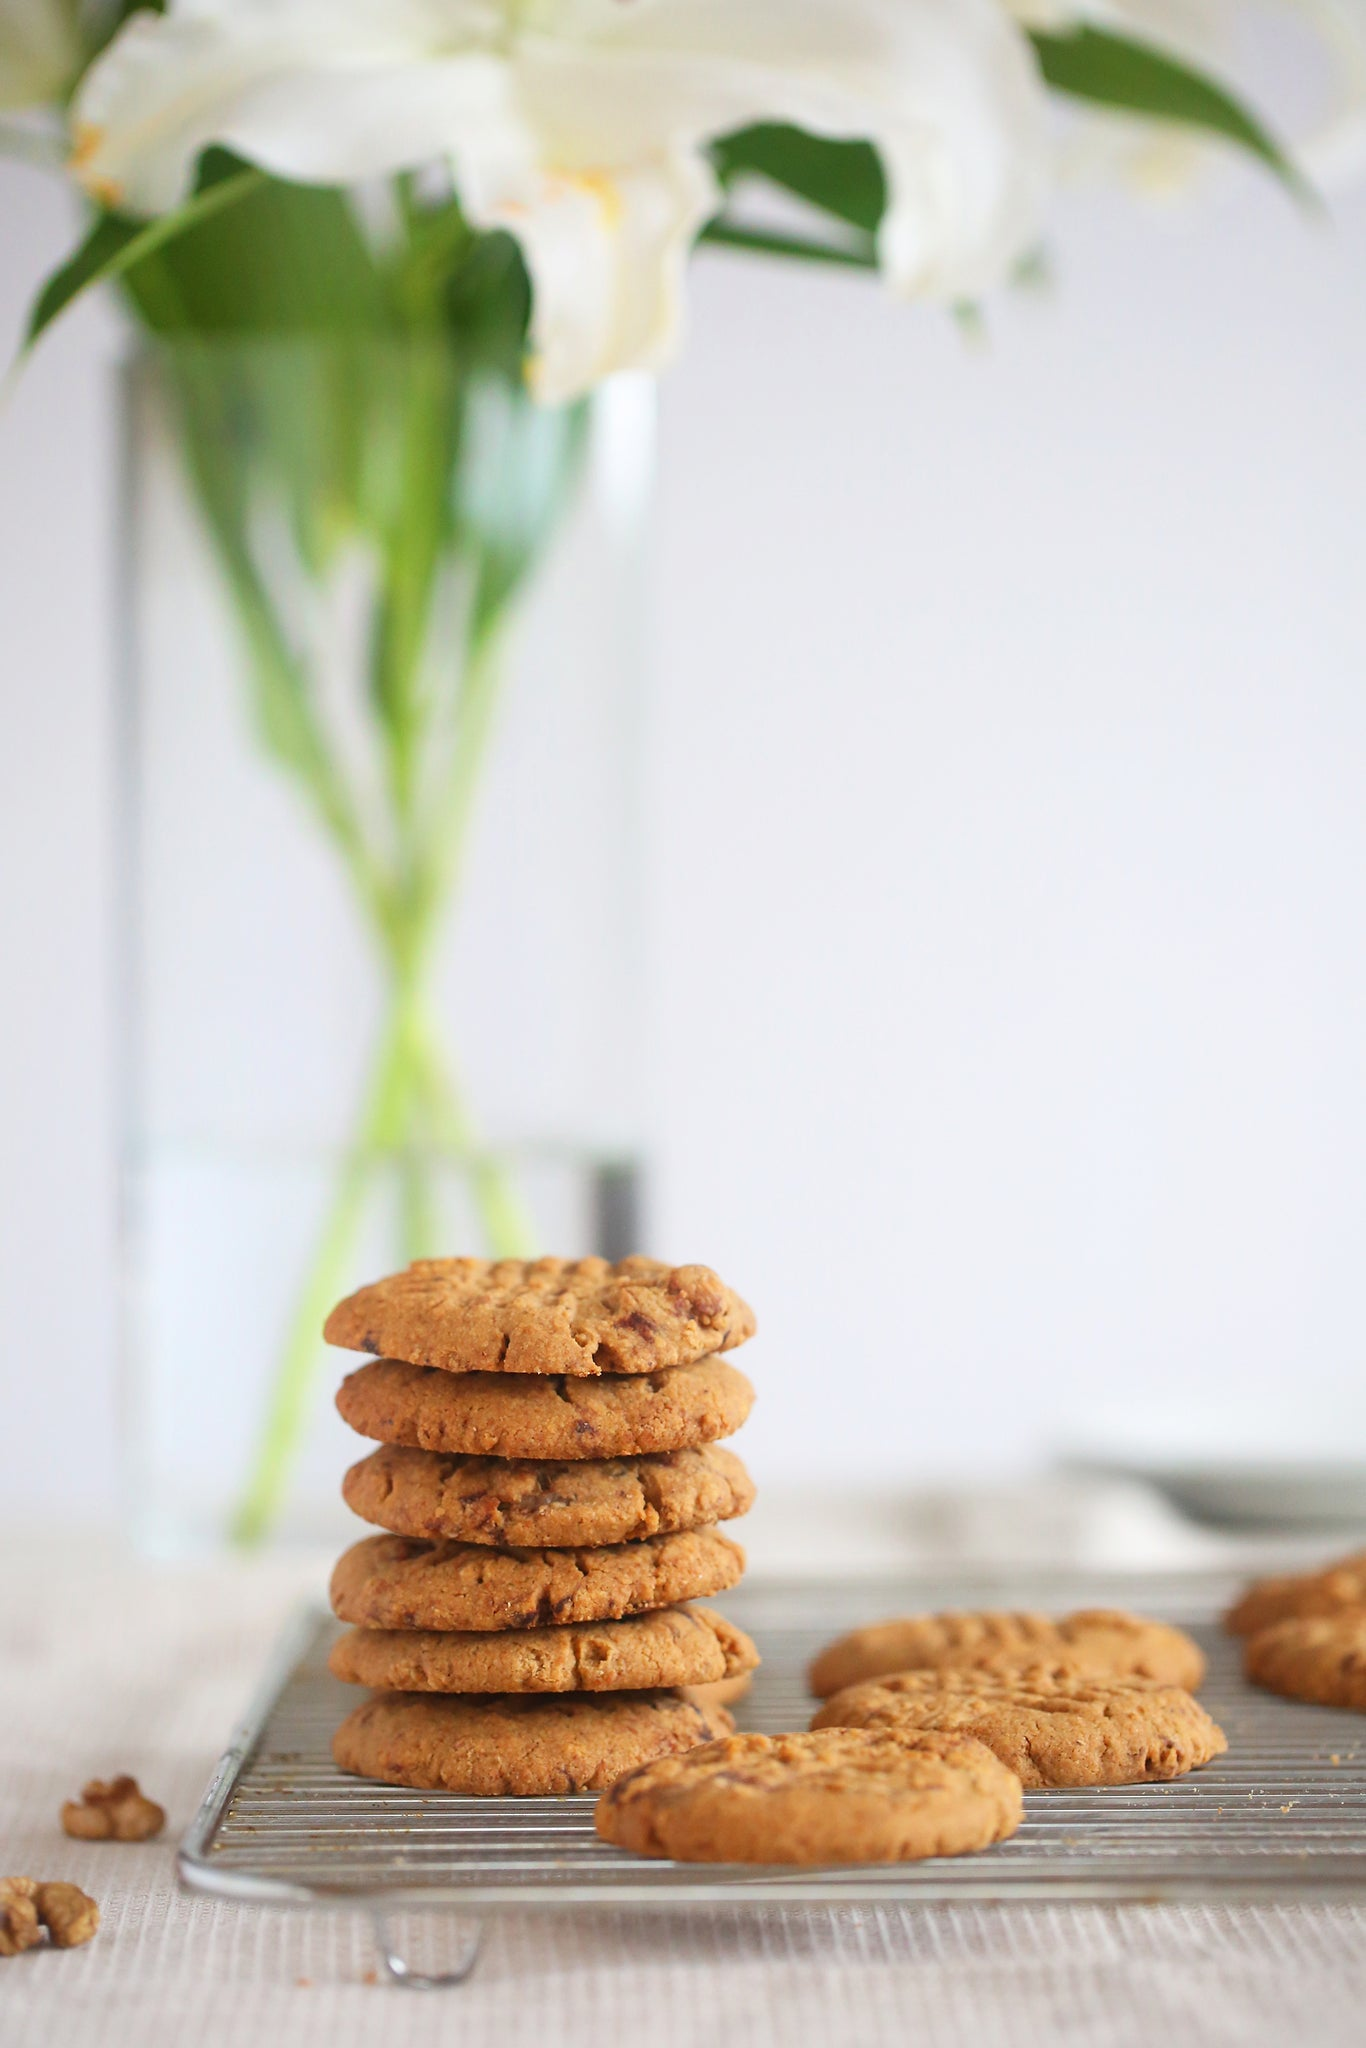 Glorious WALNUT AND CHOCOLATE CHUNK COOKIES - healthy, vegan, dairy free, low sugar, no refined sugar, wheat free, egg free, one bowl, begoodorganics Glorious WALNUT AND CHOCOLATE CHUNK COOKIES - healthy, vegan, dairy free, low sugar, no refined sugar, wheat free, egg free, one bowl, begoodorganics